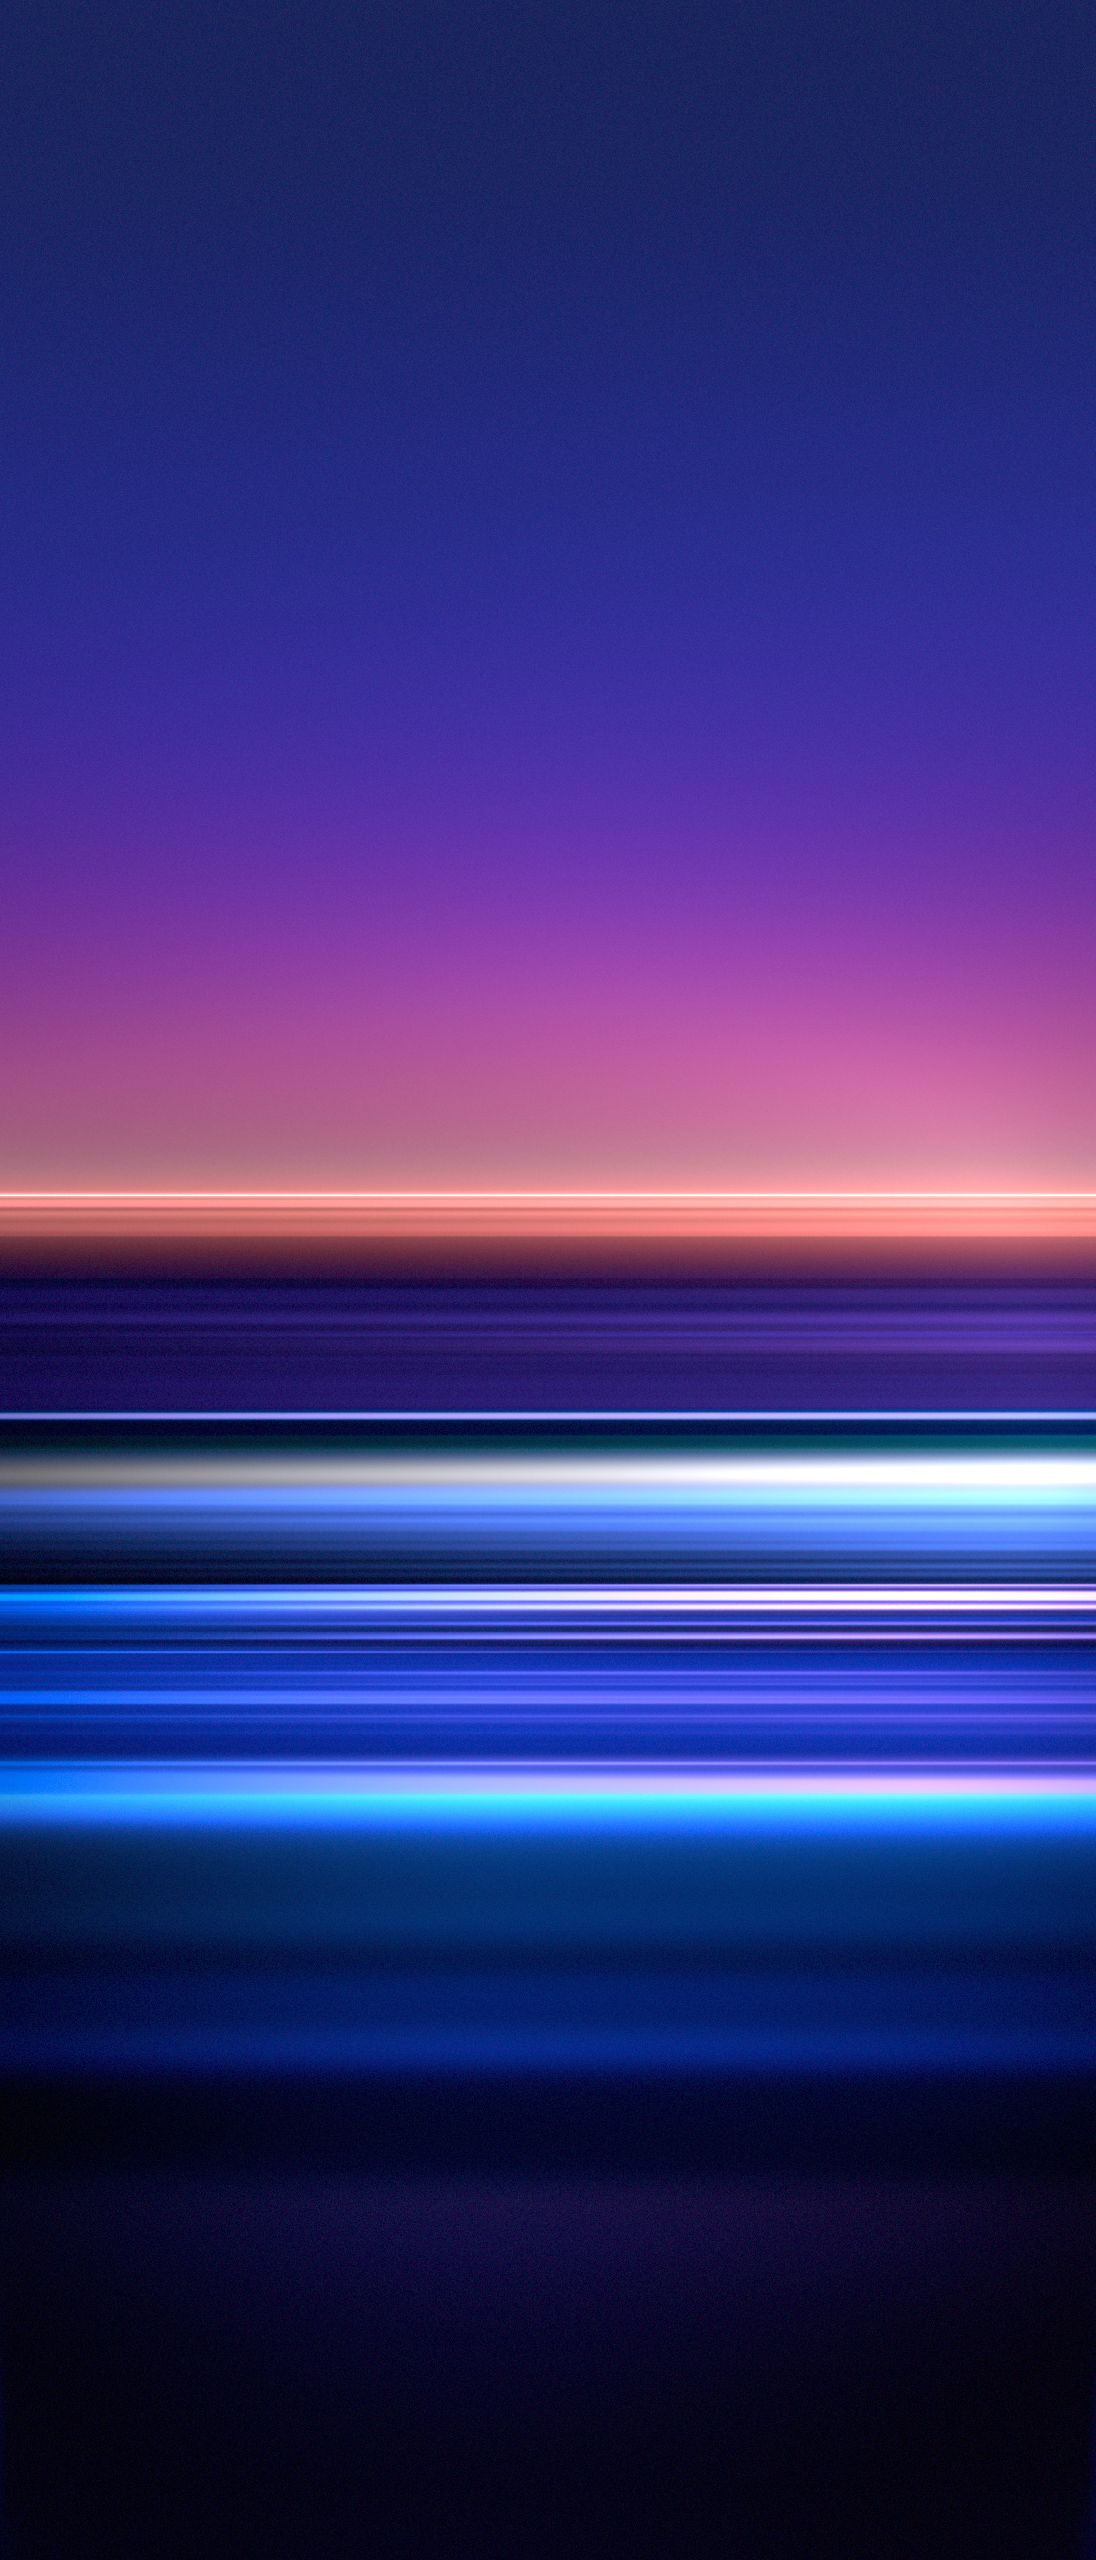 Free Download Download Sony Xperia 1 Official Wallpaper Here